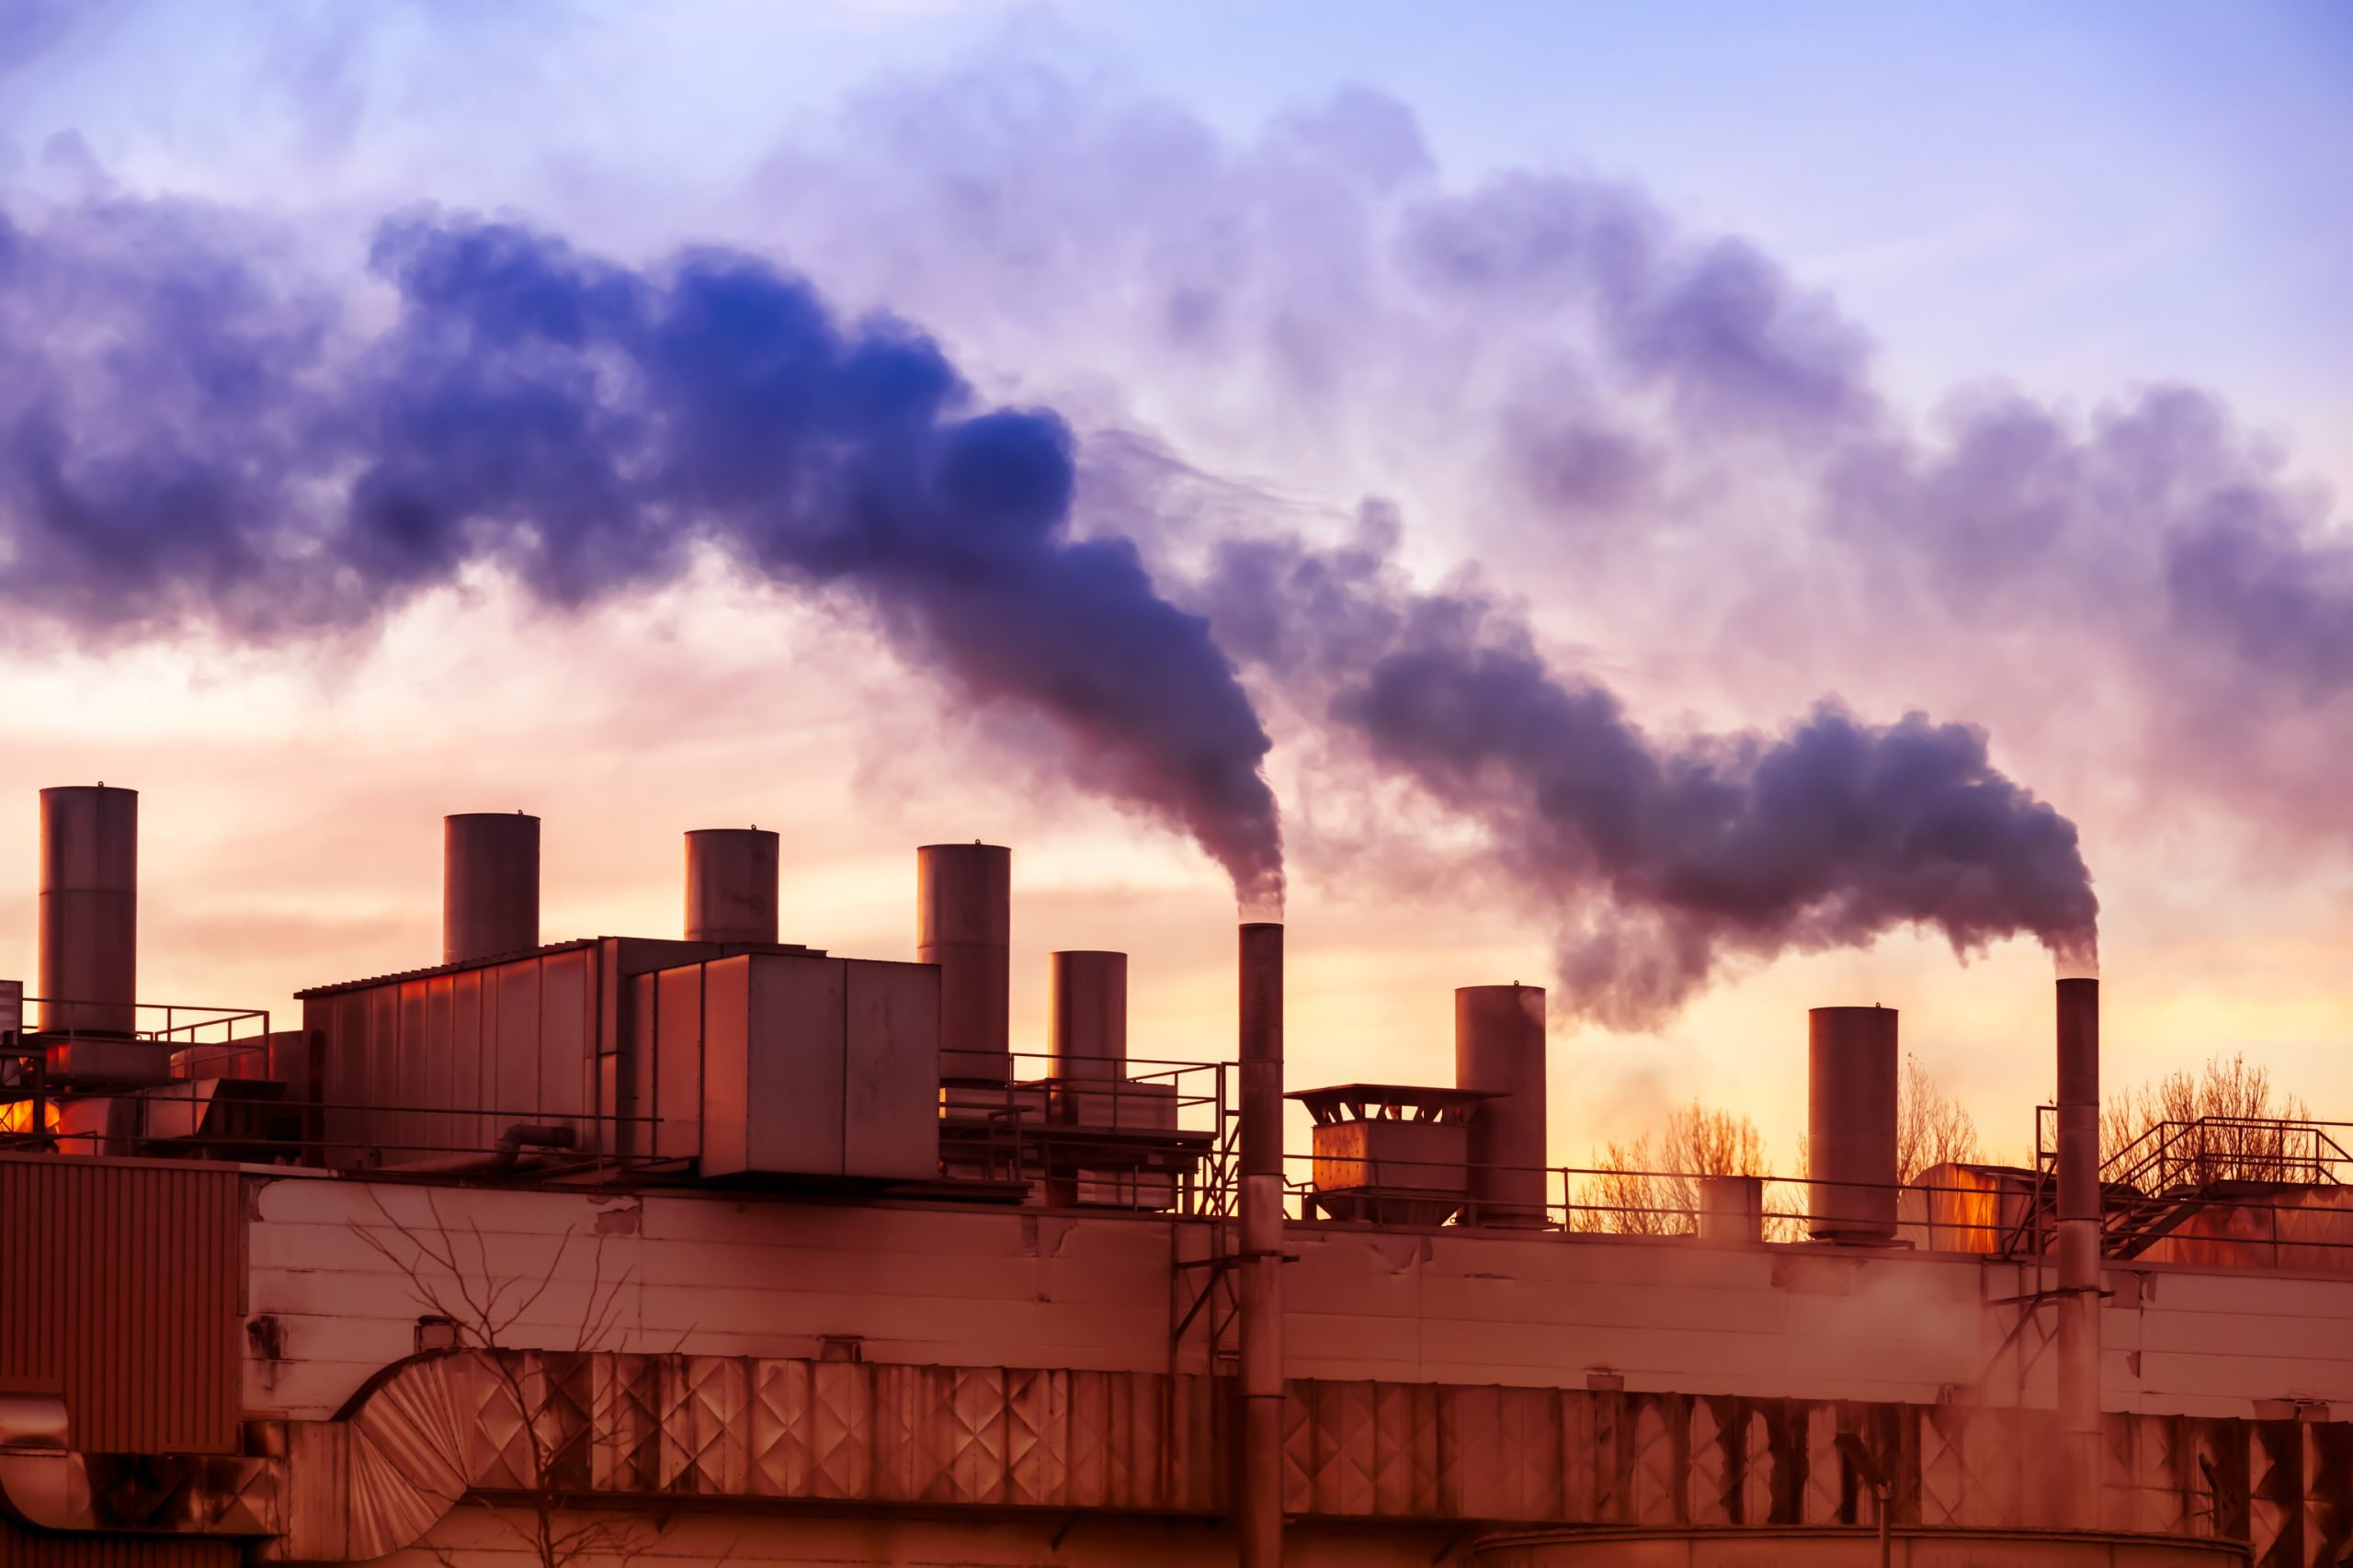 Air pollution kills seven million people a year - WHO